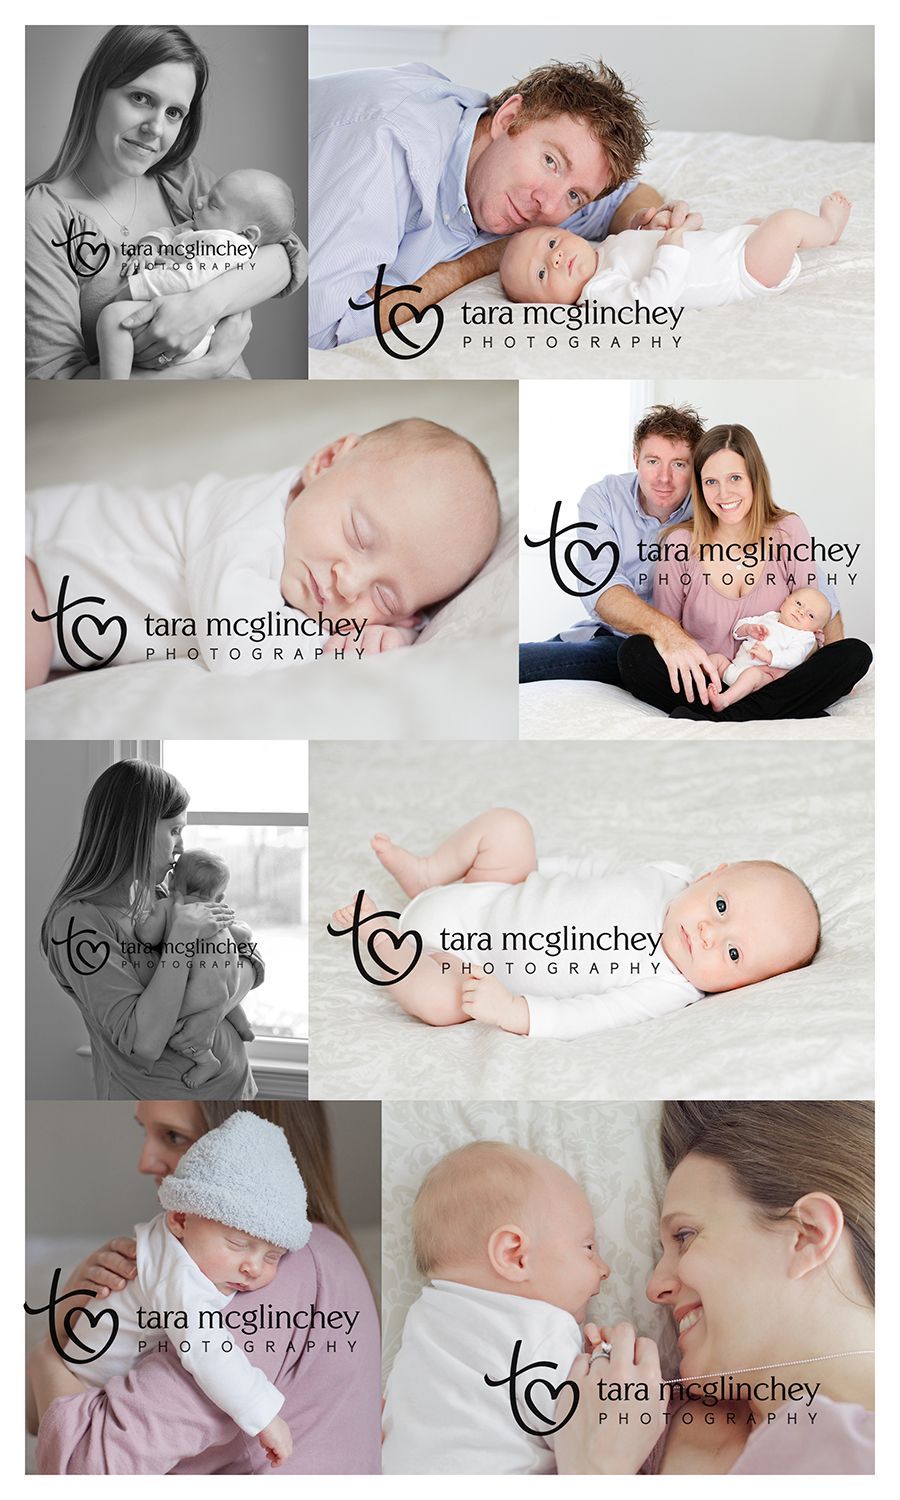 mother & son. newborn photo | maternity pictures. | Pinterest ...